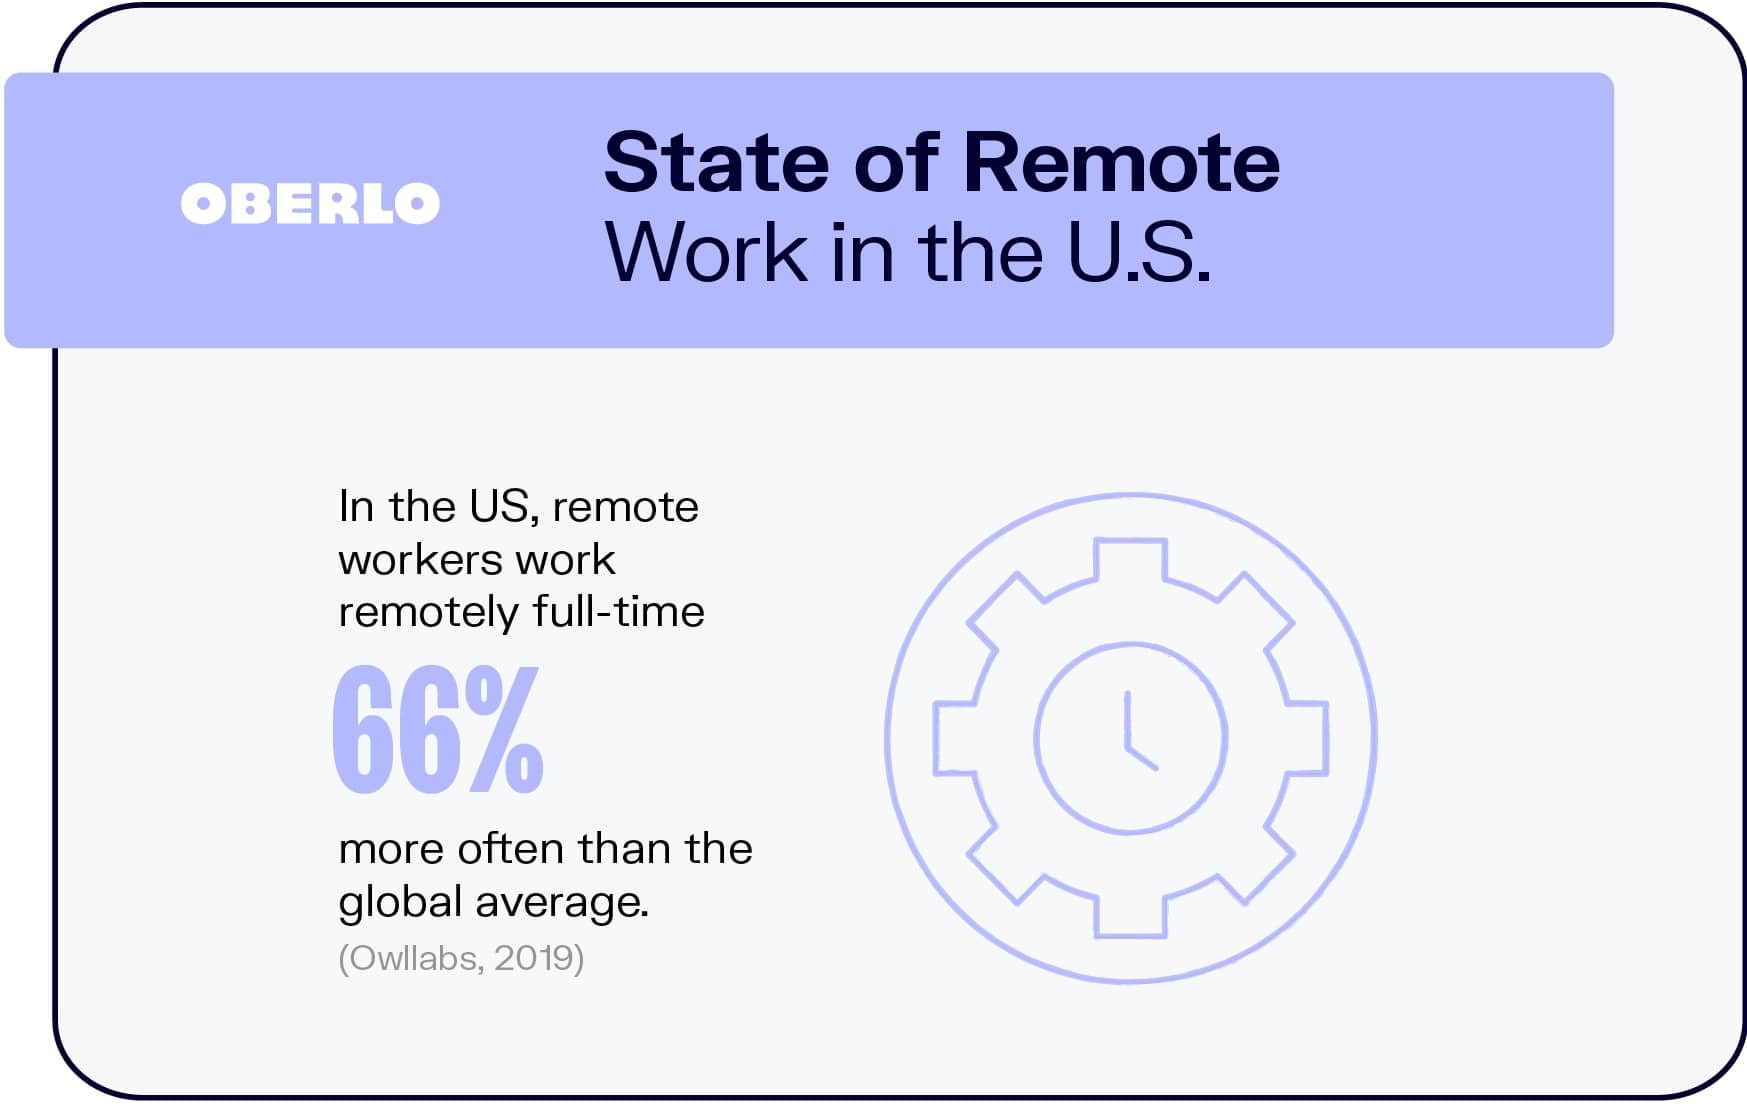 State of Remote Work in the U.S.